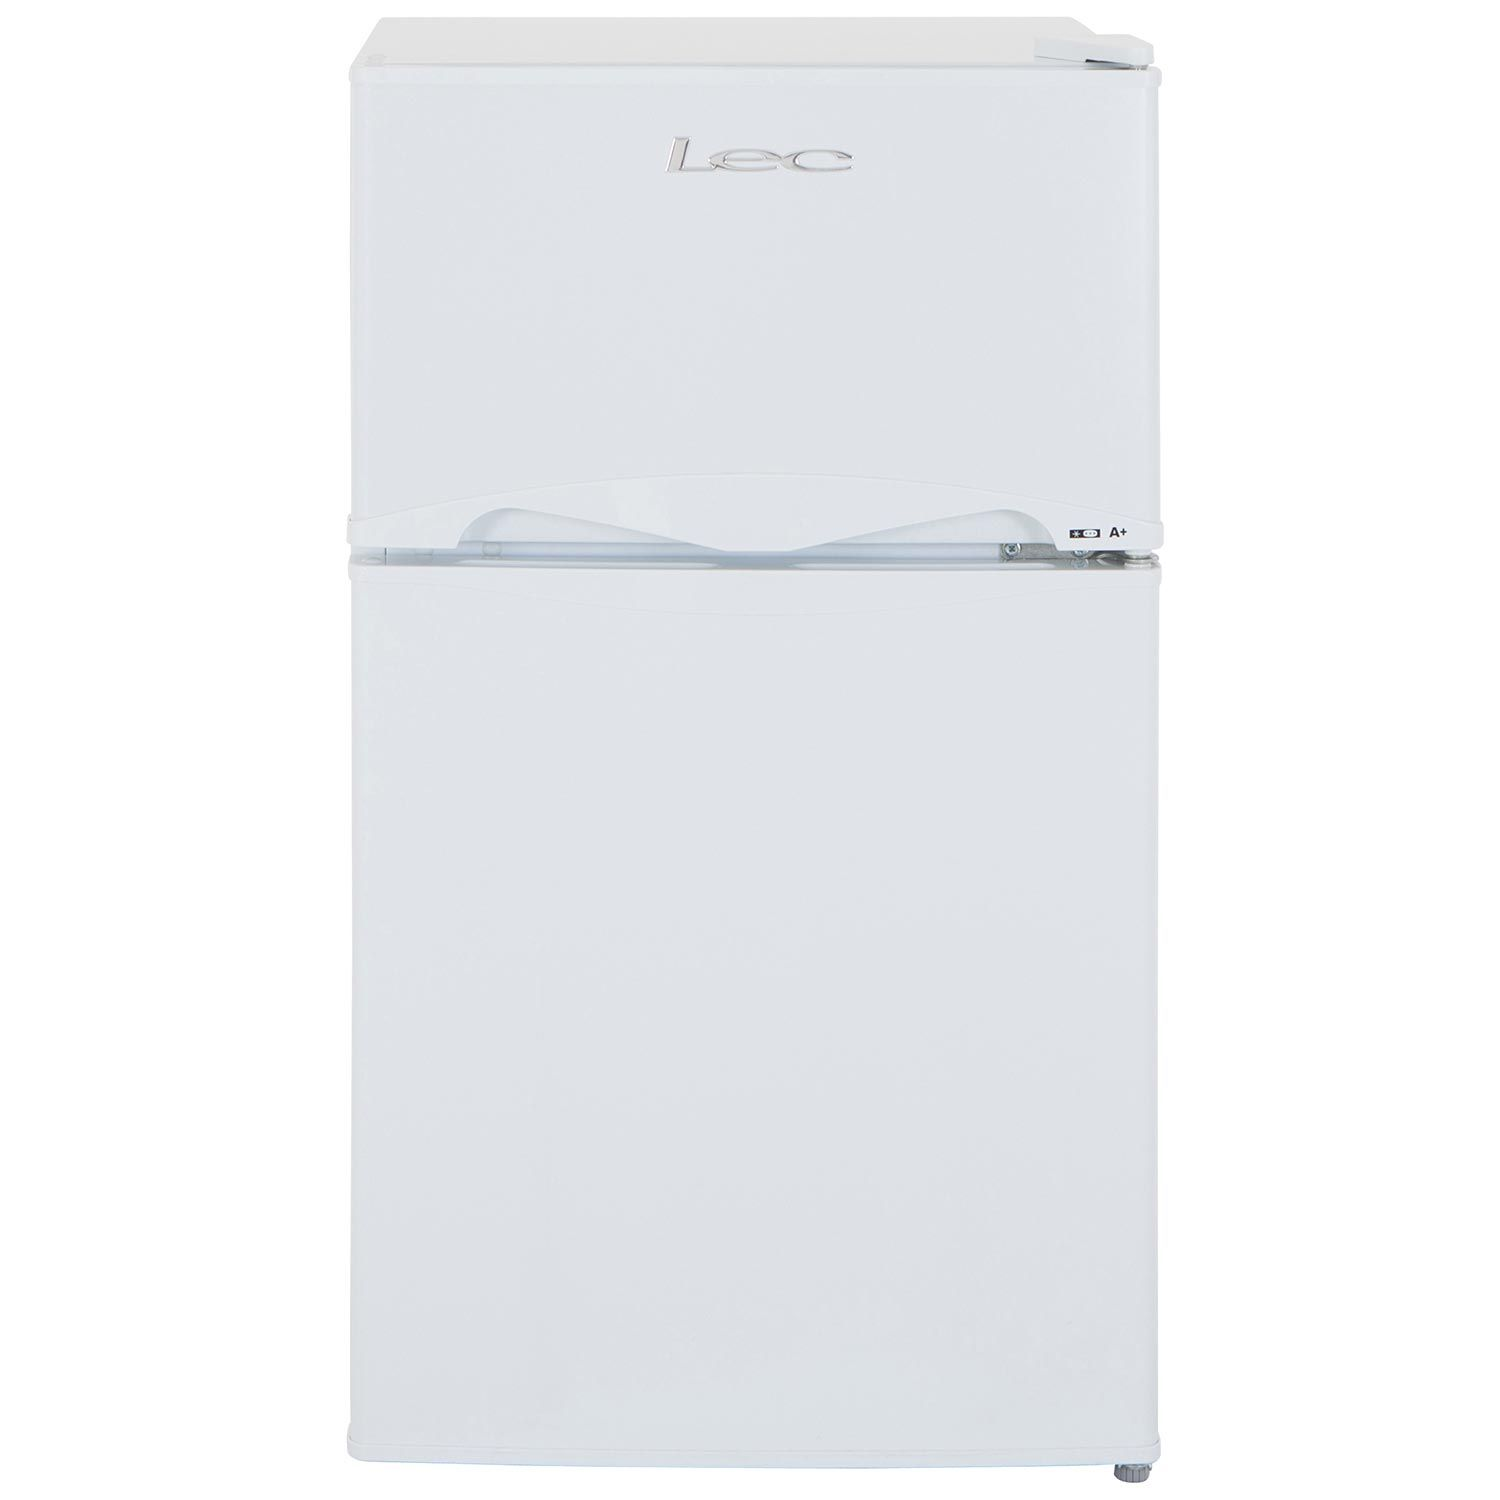 Lec Undercounter Fridge Freezer. This Appliance Has Been Designed To Fit  Perfectly Underneath A Kitchen Counter For Those That Are Tight For Space.